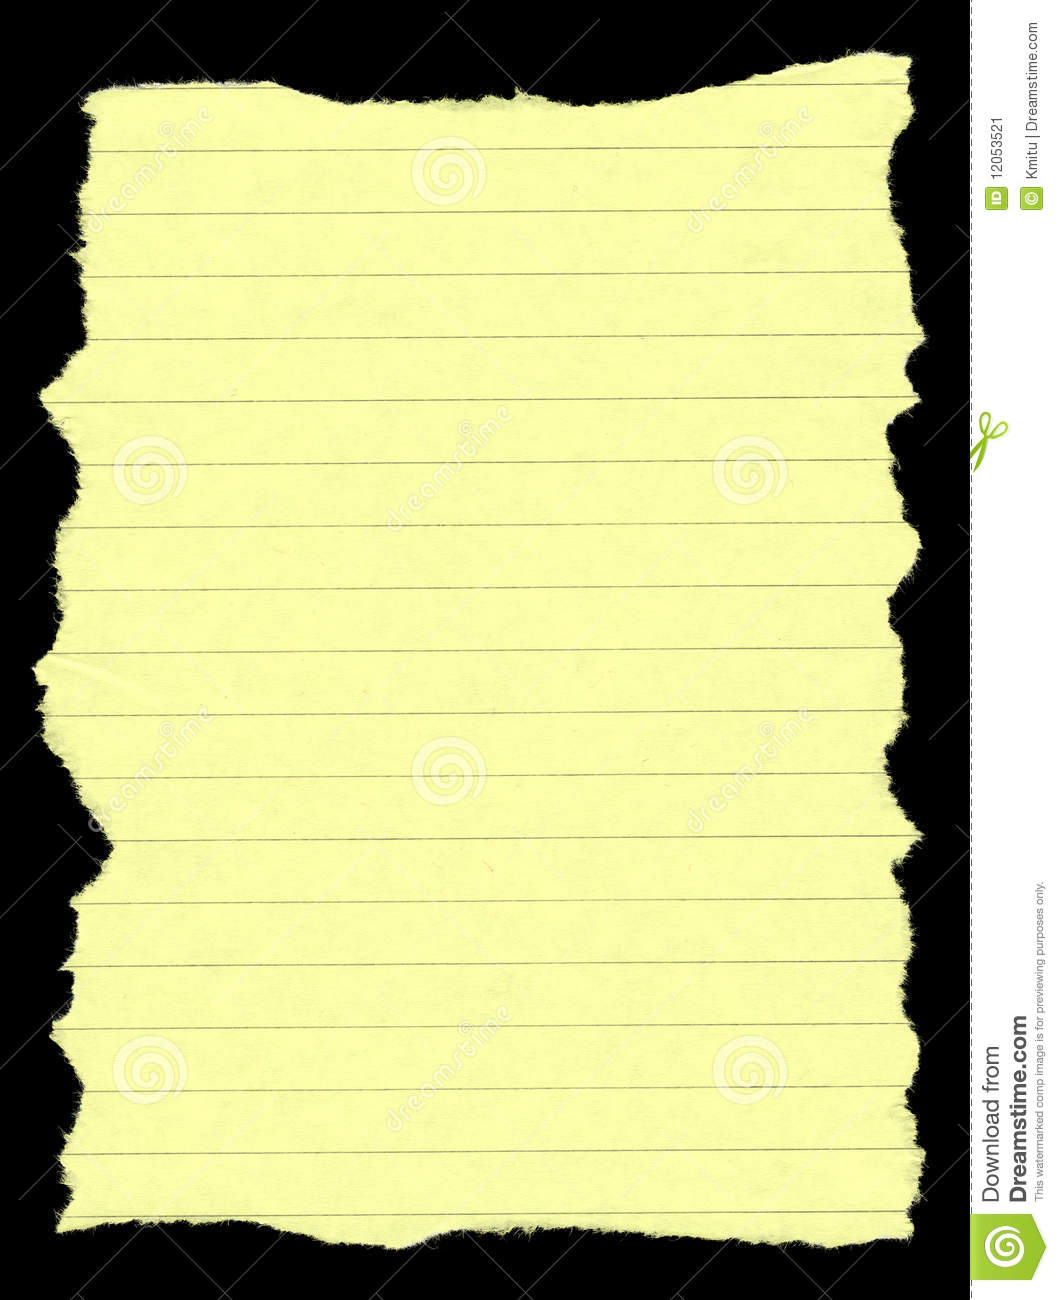 torn lined paper stock illustration. illustration of background